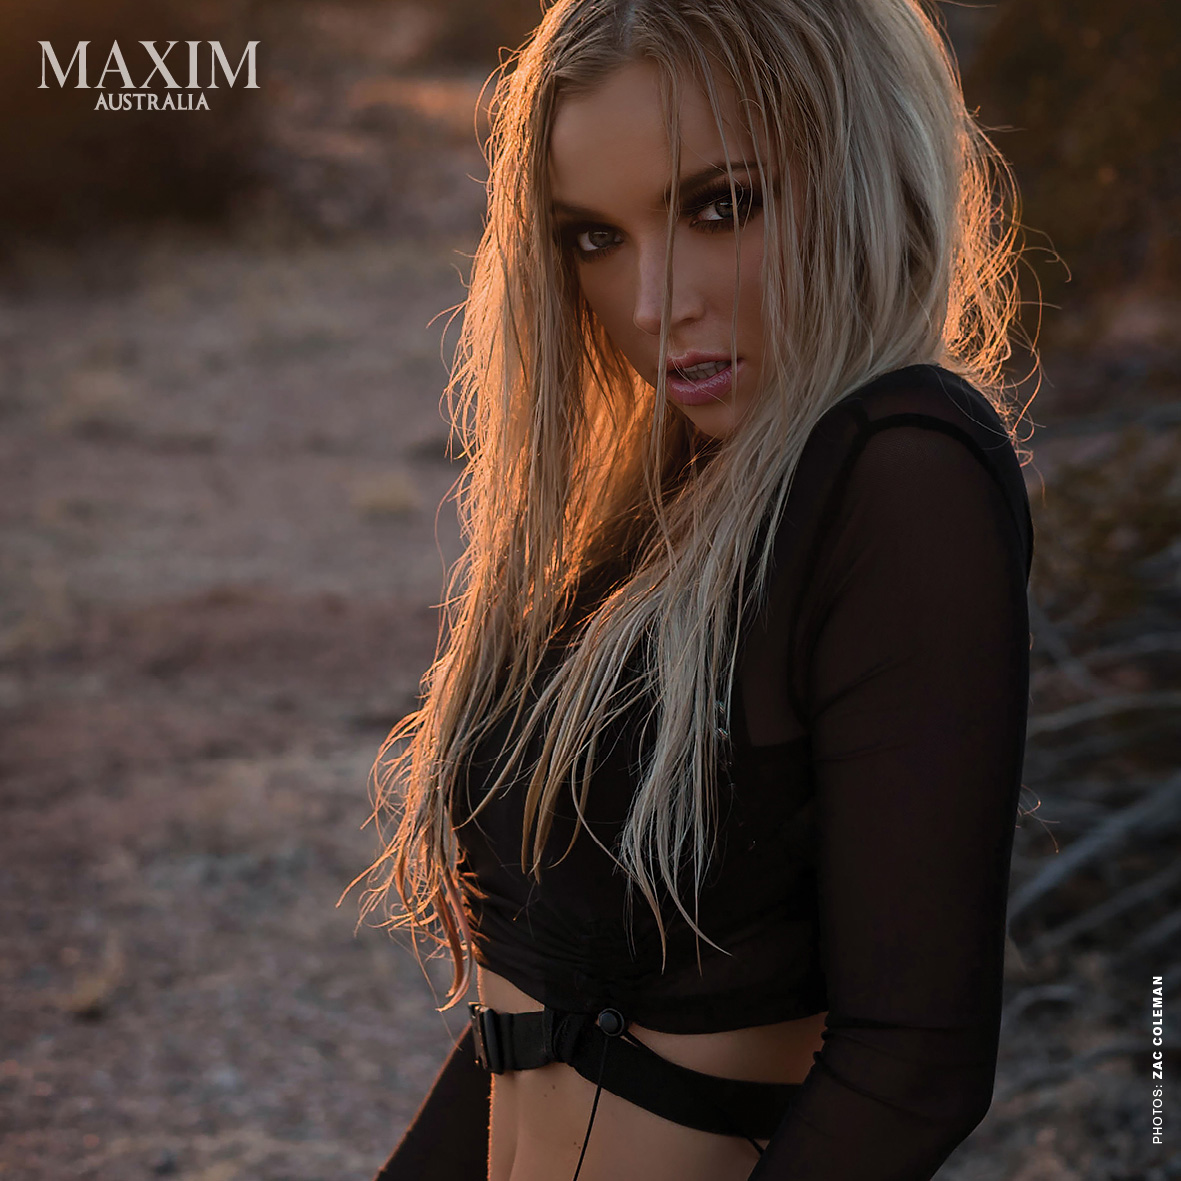 Maxim-New-Zealand-Alison-Bowles-4